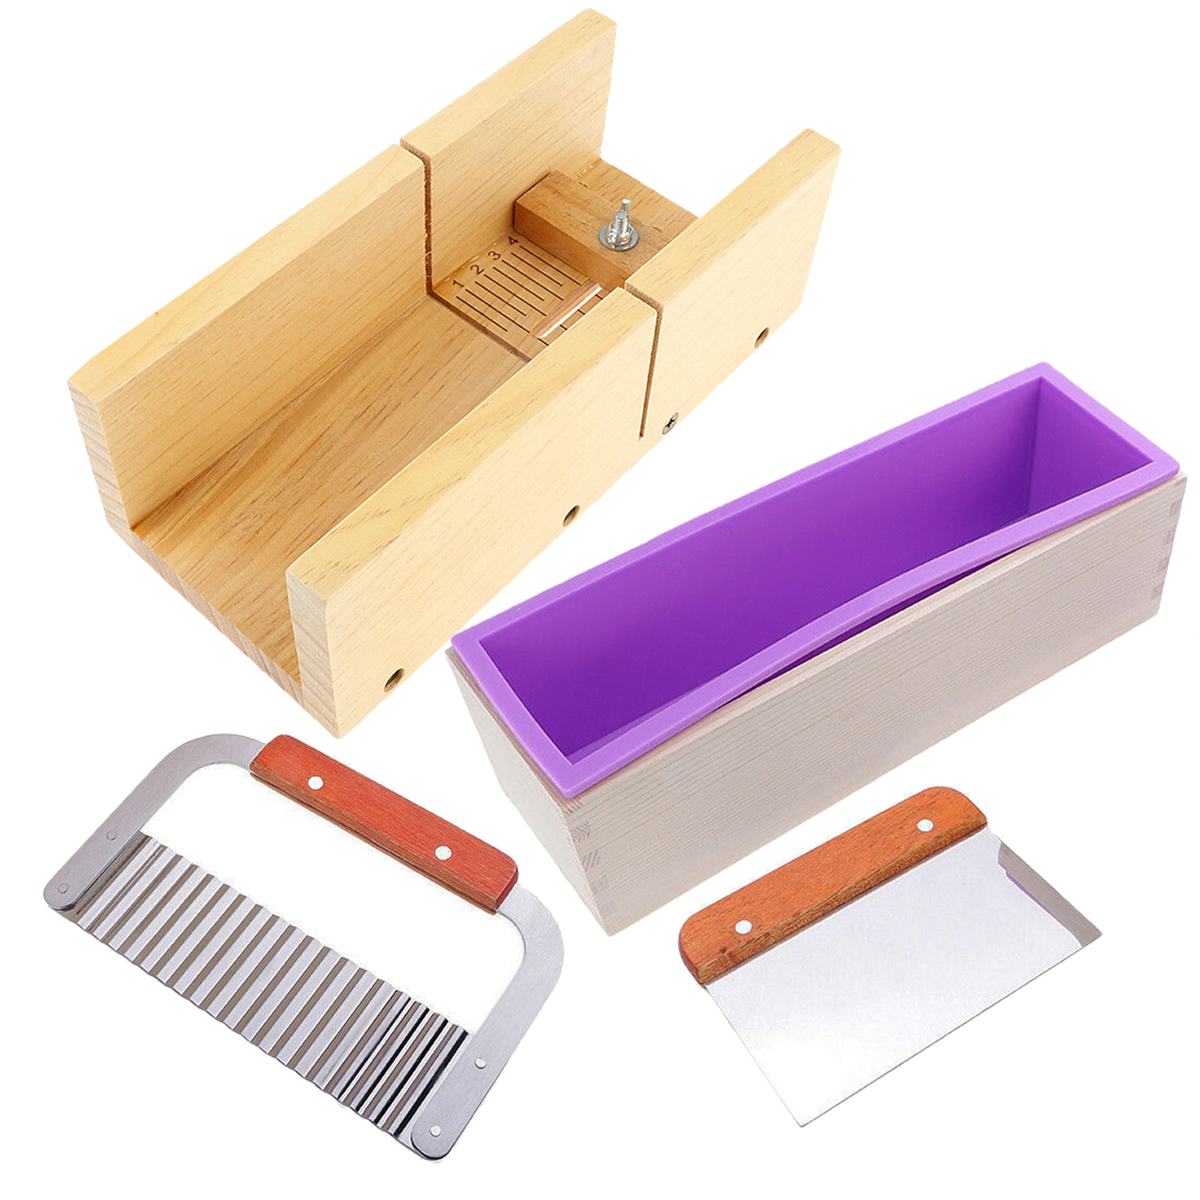 Wooden Box Silicone Soap Making Mold Loaf with Soap Cutter Cutting Mould